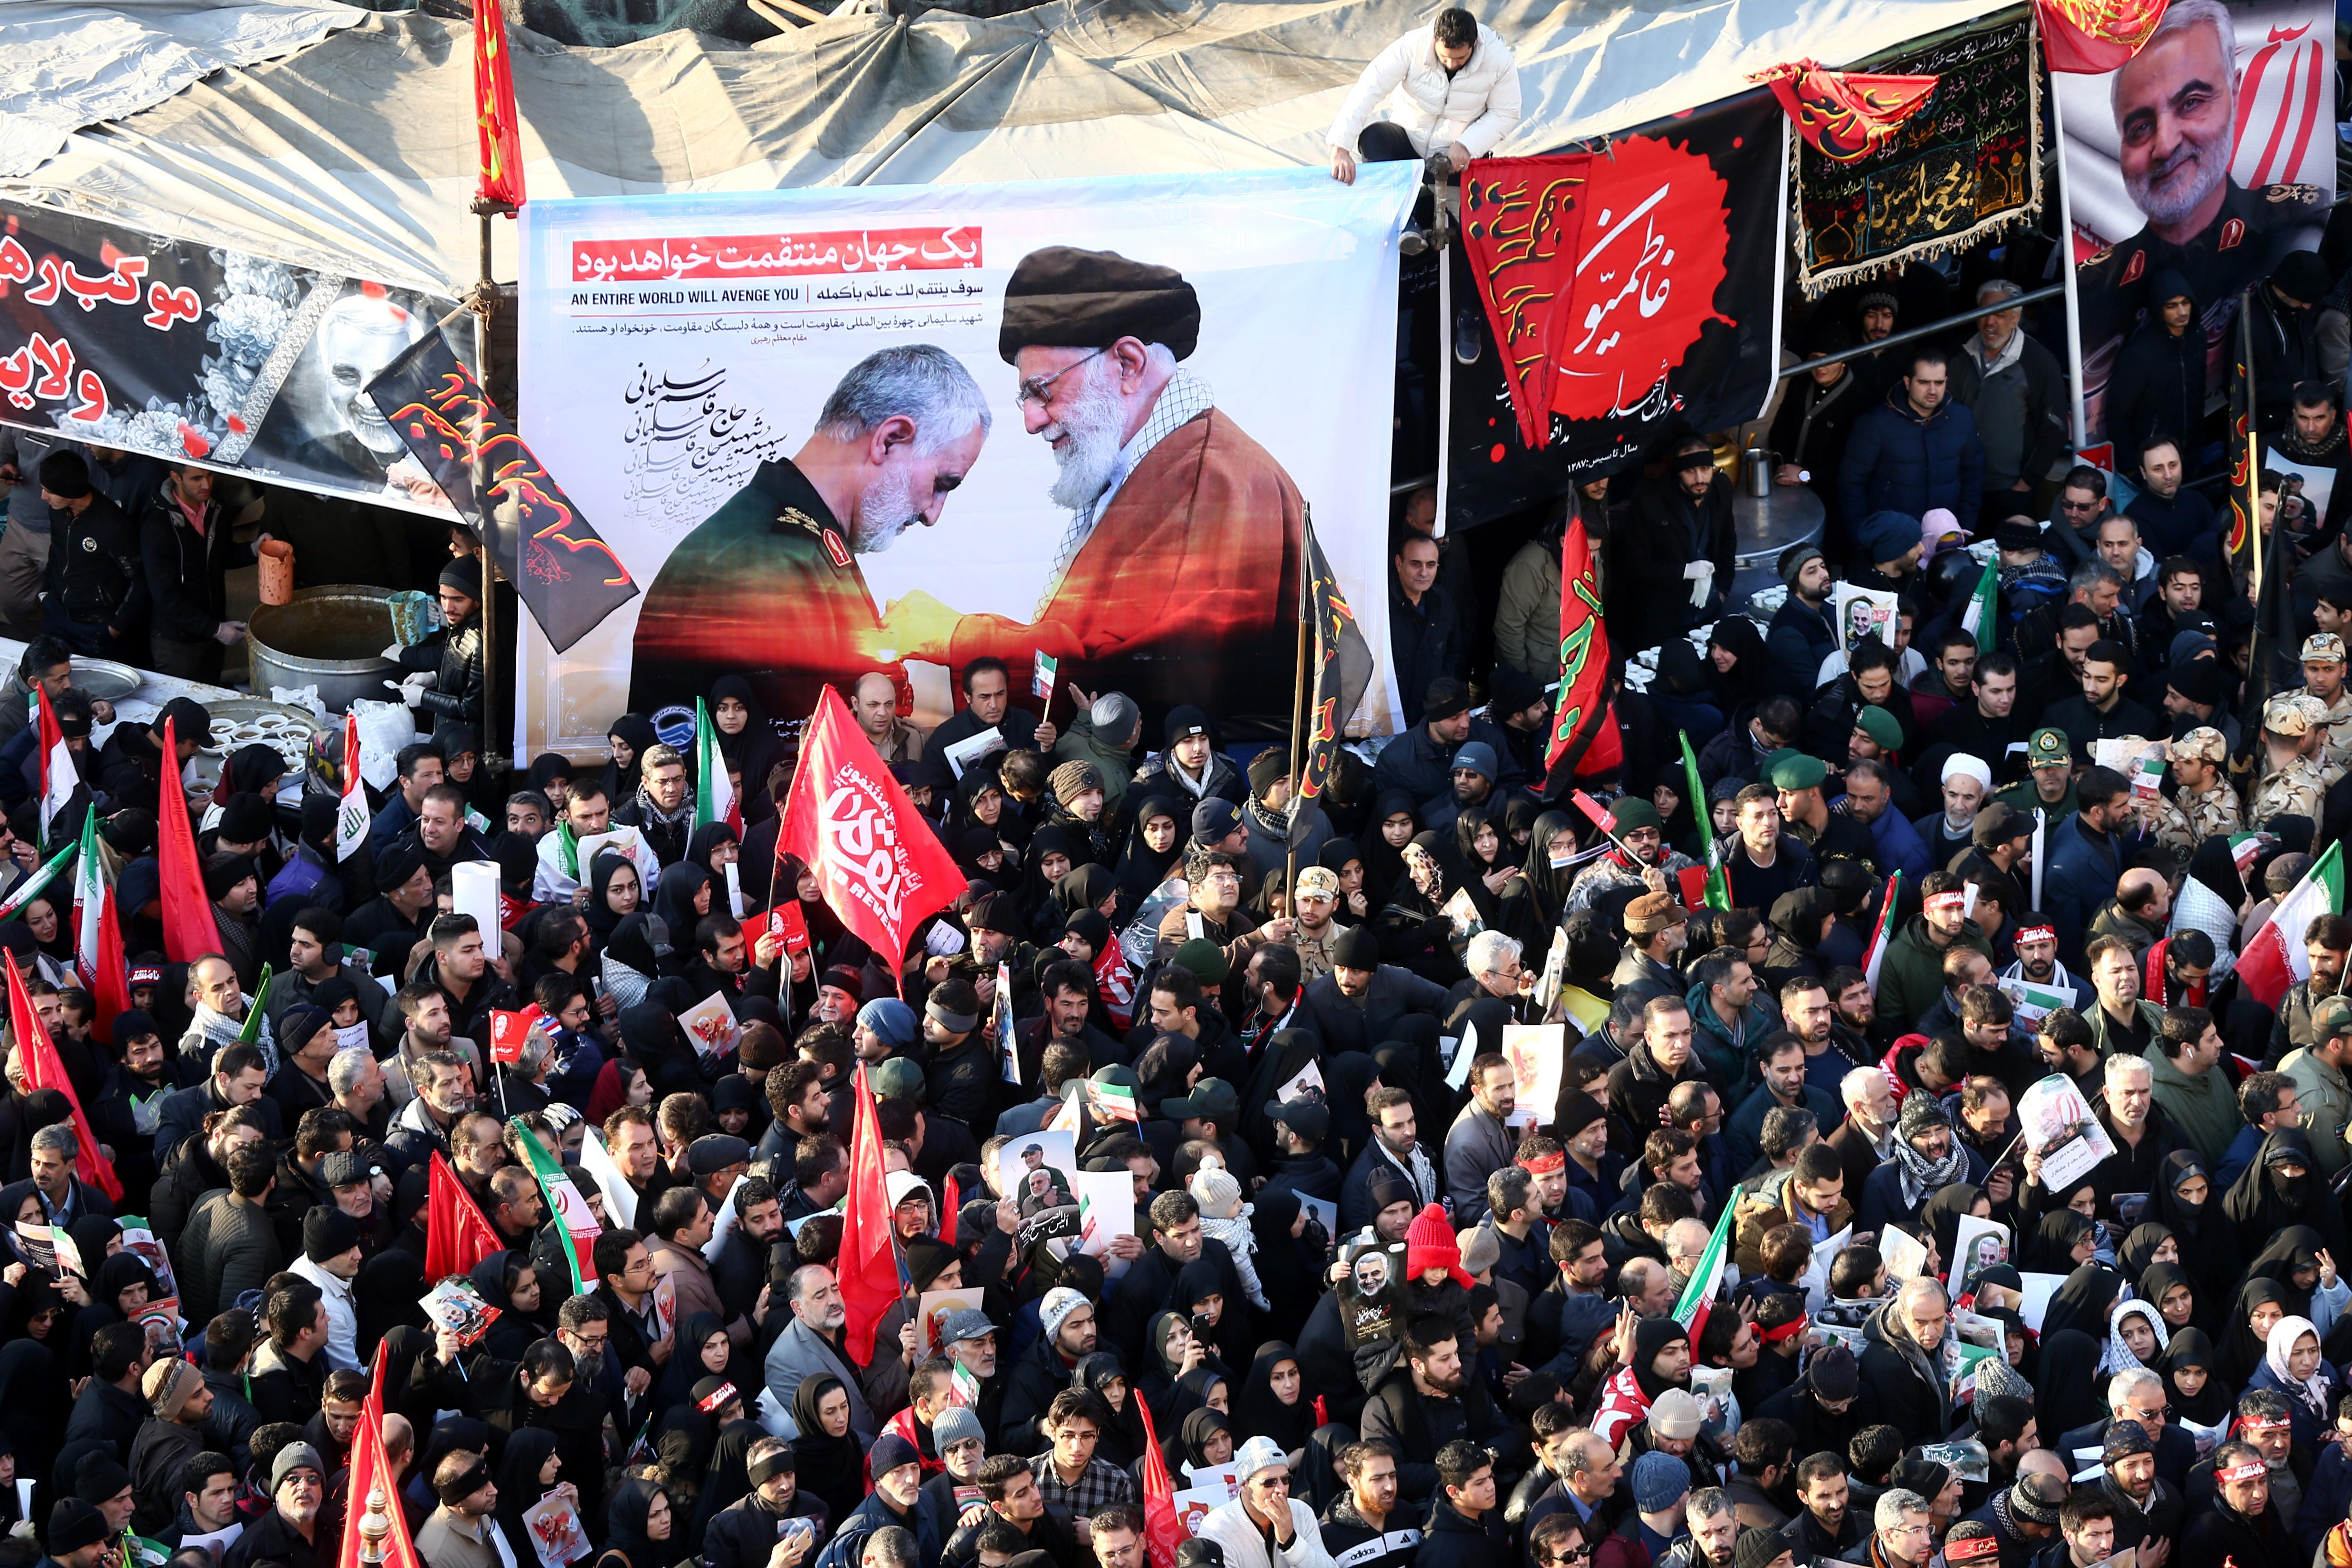 Iranian people attend a funeral procession for Iranian Major-General Qassem Soleimani, head of the elite Quds Force, and Iraqi militia commander Abu Mahdi al-Muhandis, who were killed in an air strike at Baghdad airport, in Tehran, Iran January 6, 2020. Nazanin Tabatabaee/WANA (West Asia News Agency) via REUTERS ATTENTION EDITORS - THIS IMAGE HAS BEEN SUPPLIED BY A THIRD PARTY